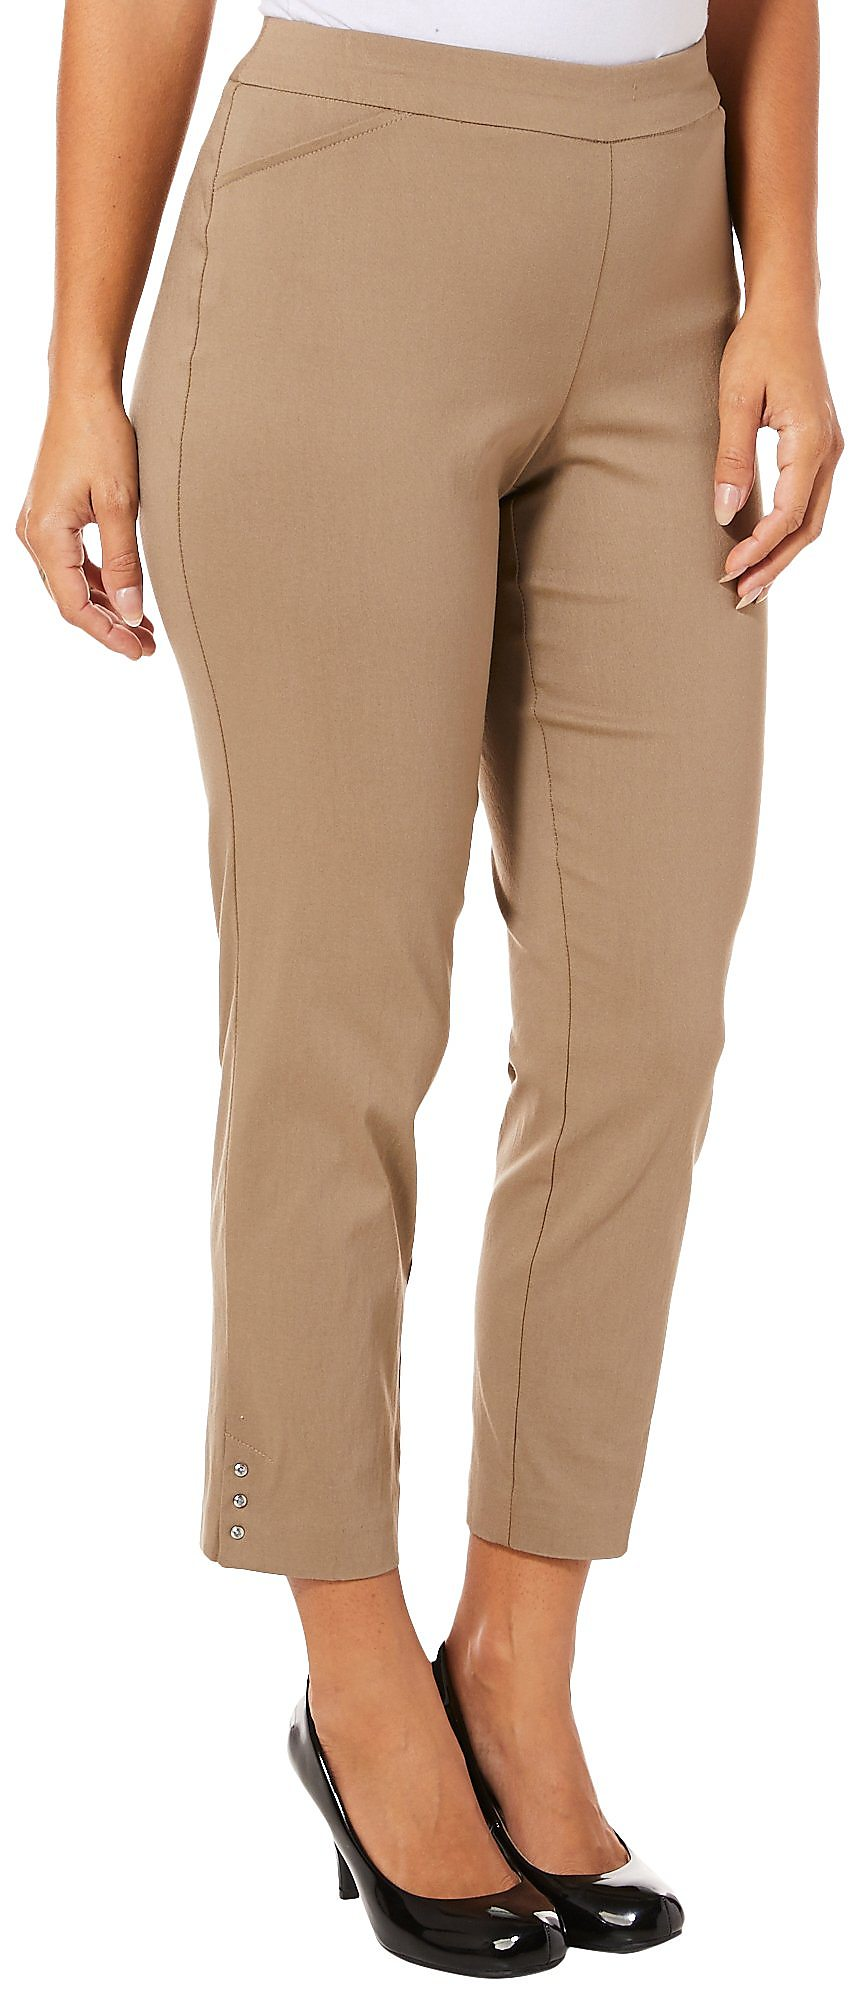 951d44cc922 Counterparts Womens Solid Embellished Hem Pull On Pants